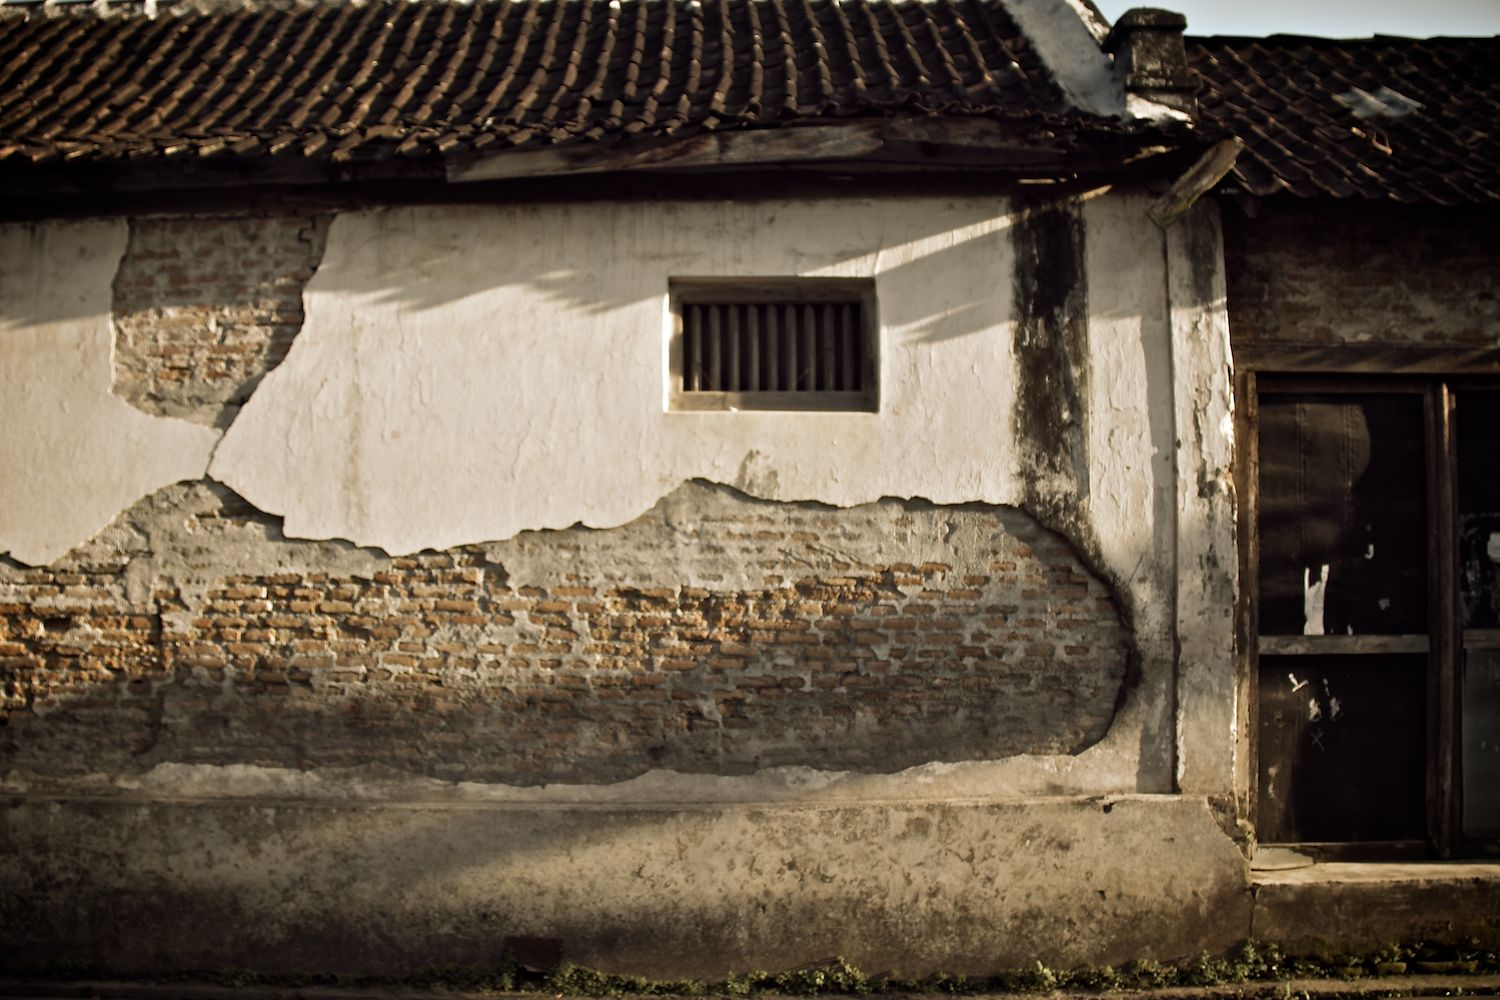 There are stories waiting to be uncovered behind the walls of Kotagede.